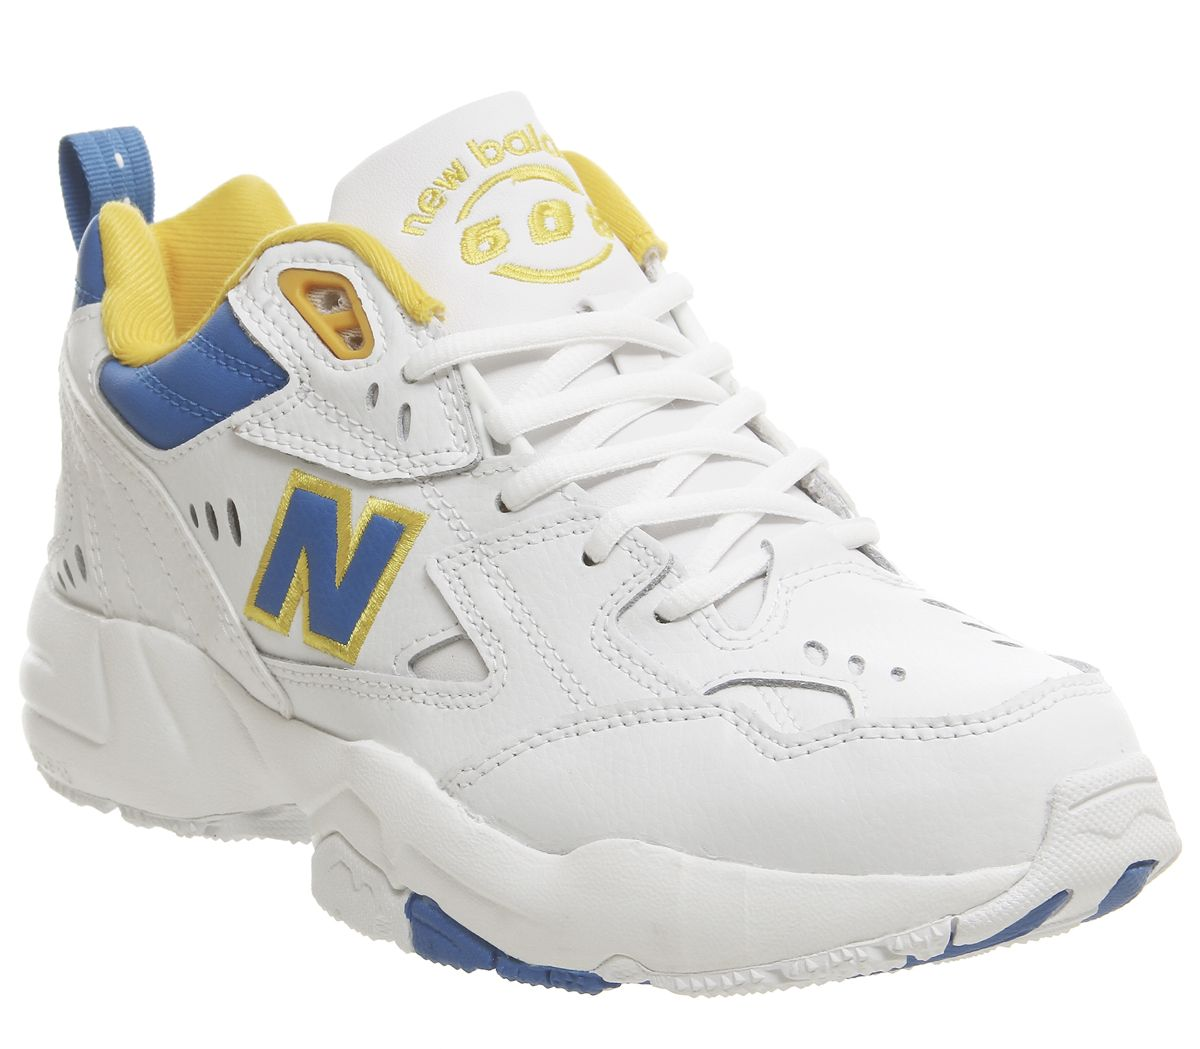 new concept 833cf a00a5 Sentinel Womens New Balance 608 Trainers White Blue Yellow Trainers Shoes.  Sentinel Thumbnail 2